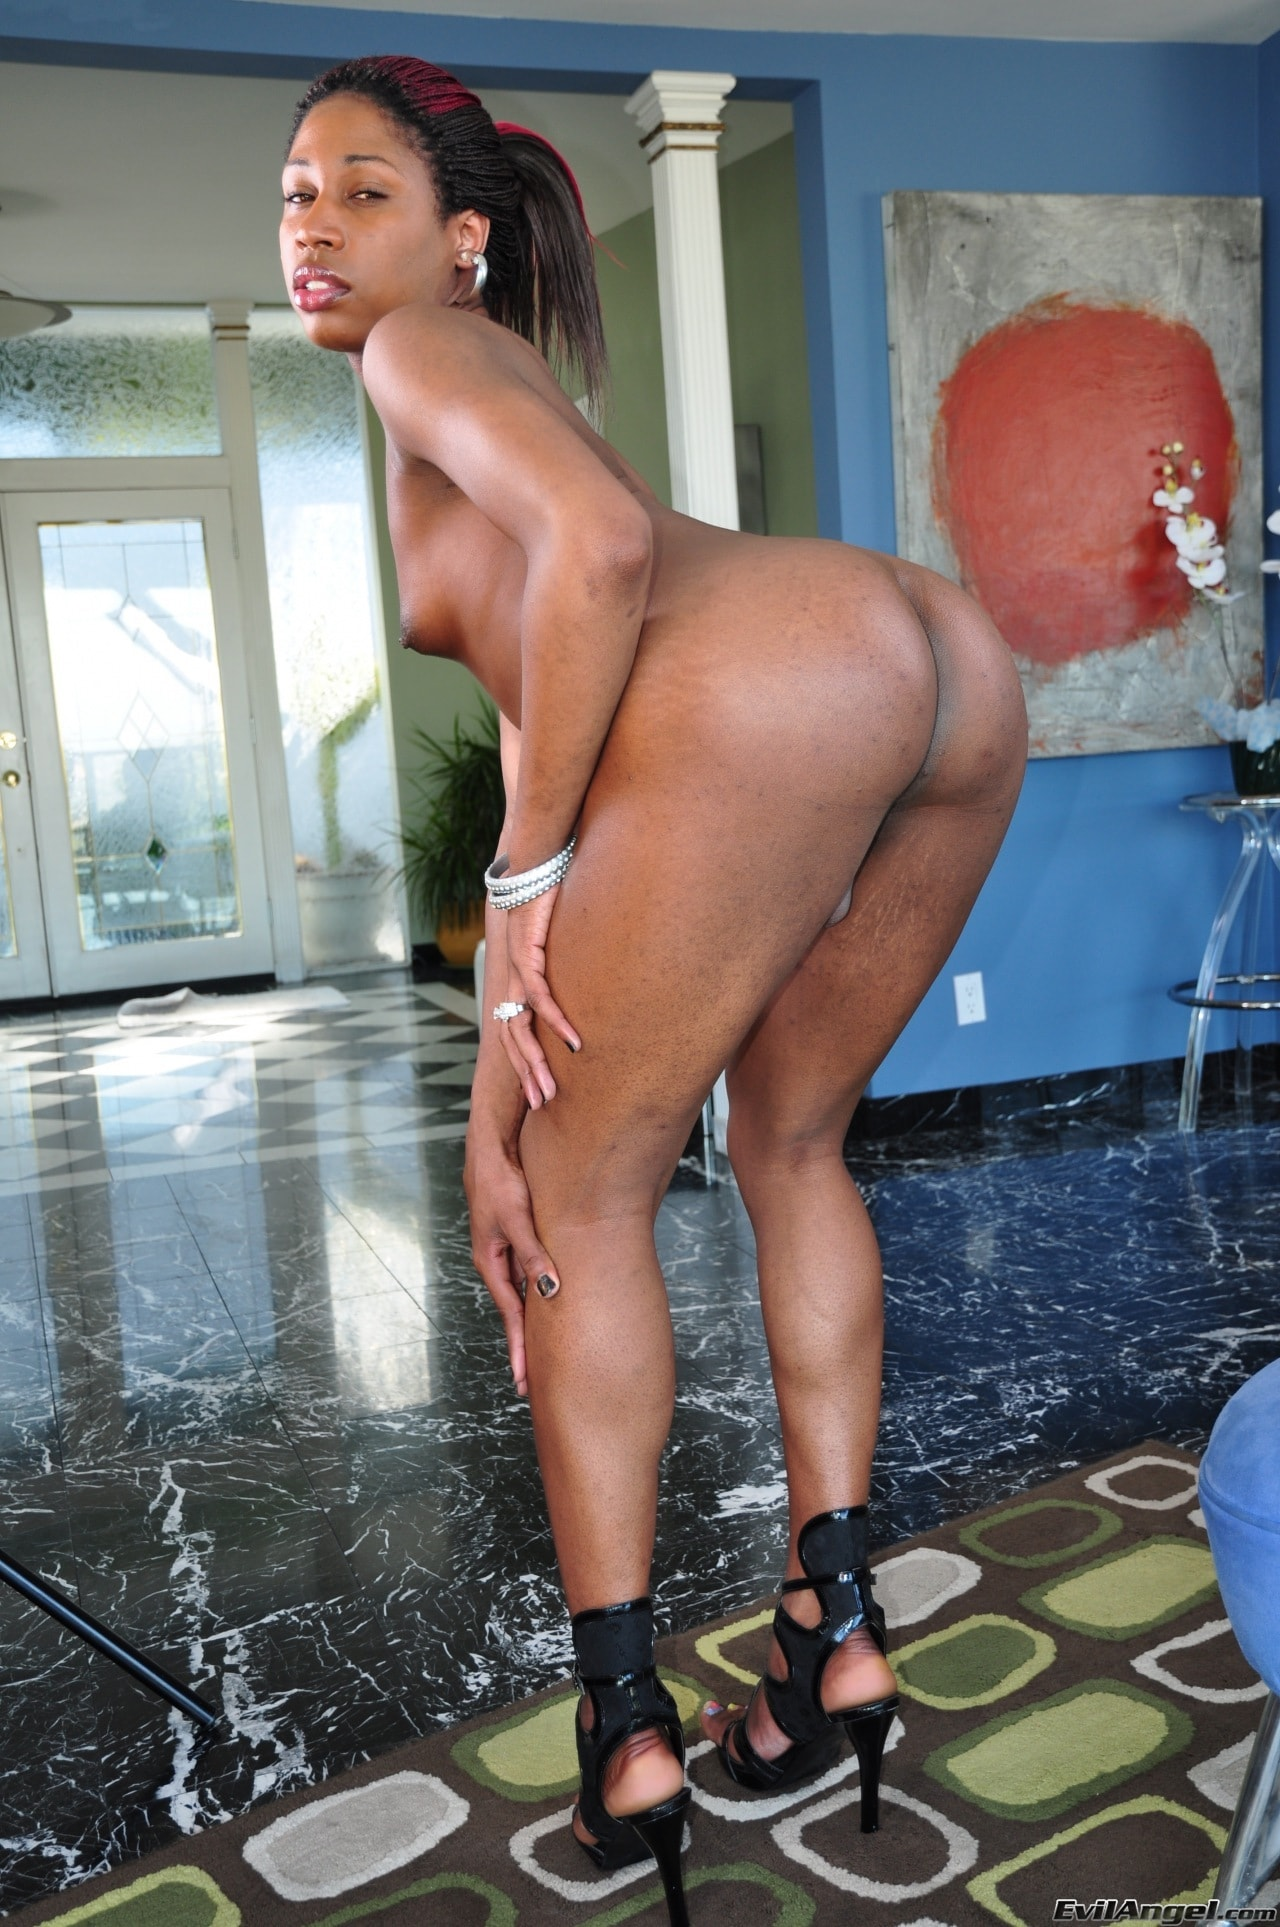 I Love Black Shemales 'Black Shemale Idol - The Auditions 02' starring Lovely B (Photo 50)